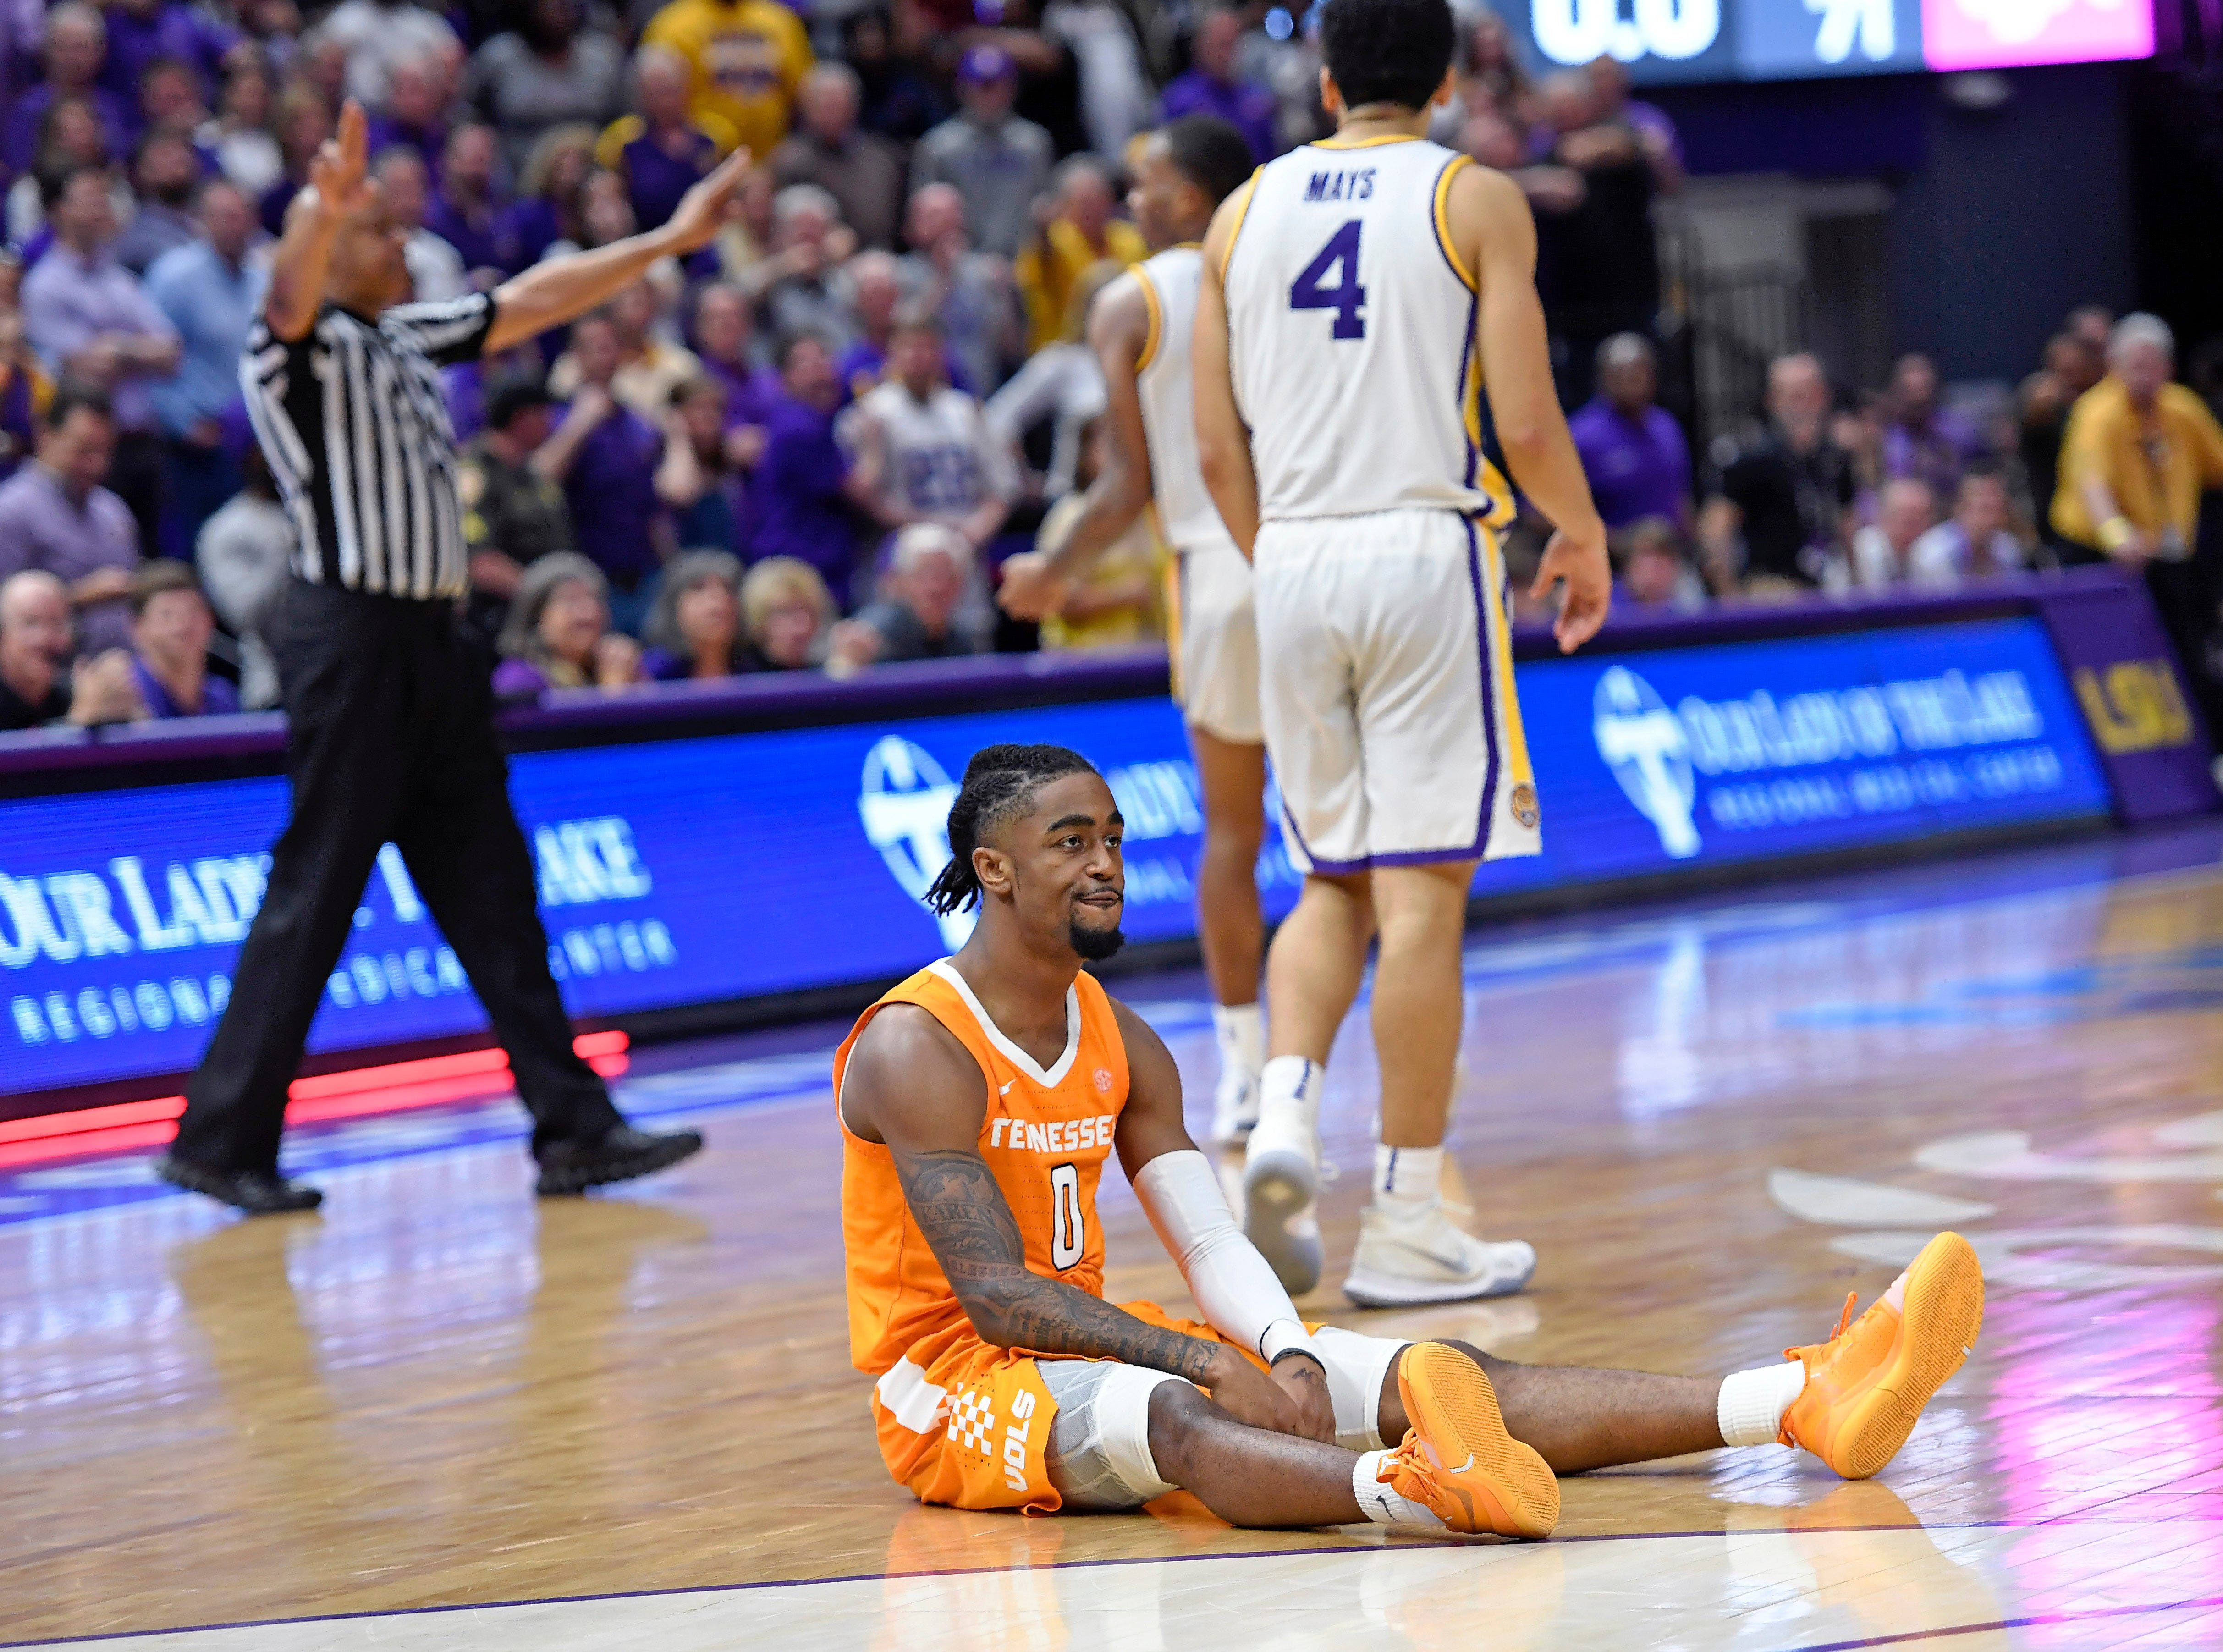 LSU guard Skylar Mays (4) walks away as Tennessee guard Jordan Bone (0) sits on the floor after slipping and unable to take a final shot in the second half of an NCAA college basketball game, Saturday, Feb. 23, 2019, in Baton Rouge, La. LSU won in overtime 82-80.(AP Photo/Bill Feig)